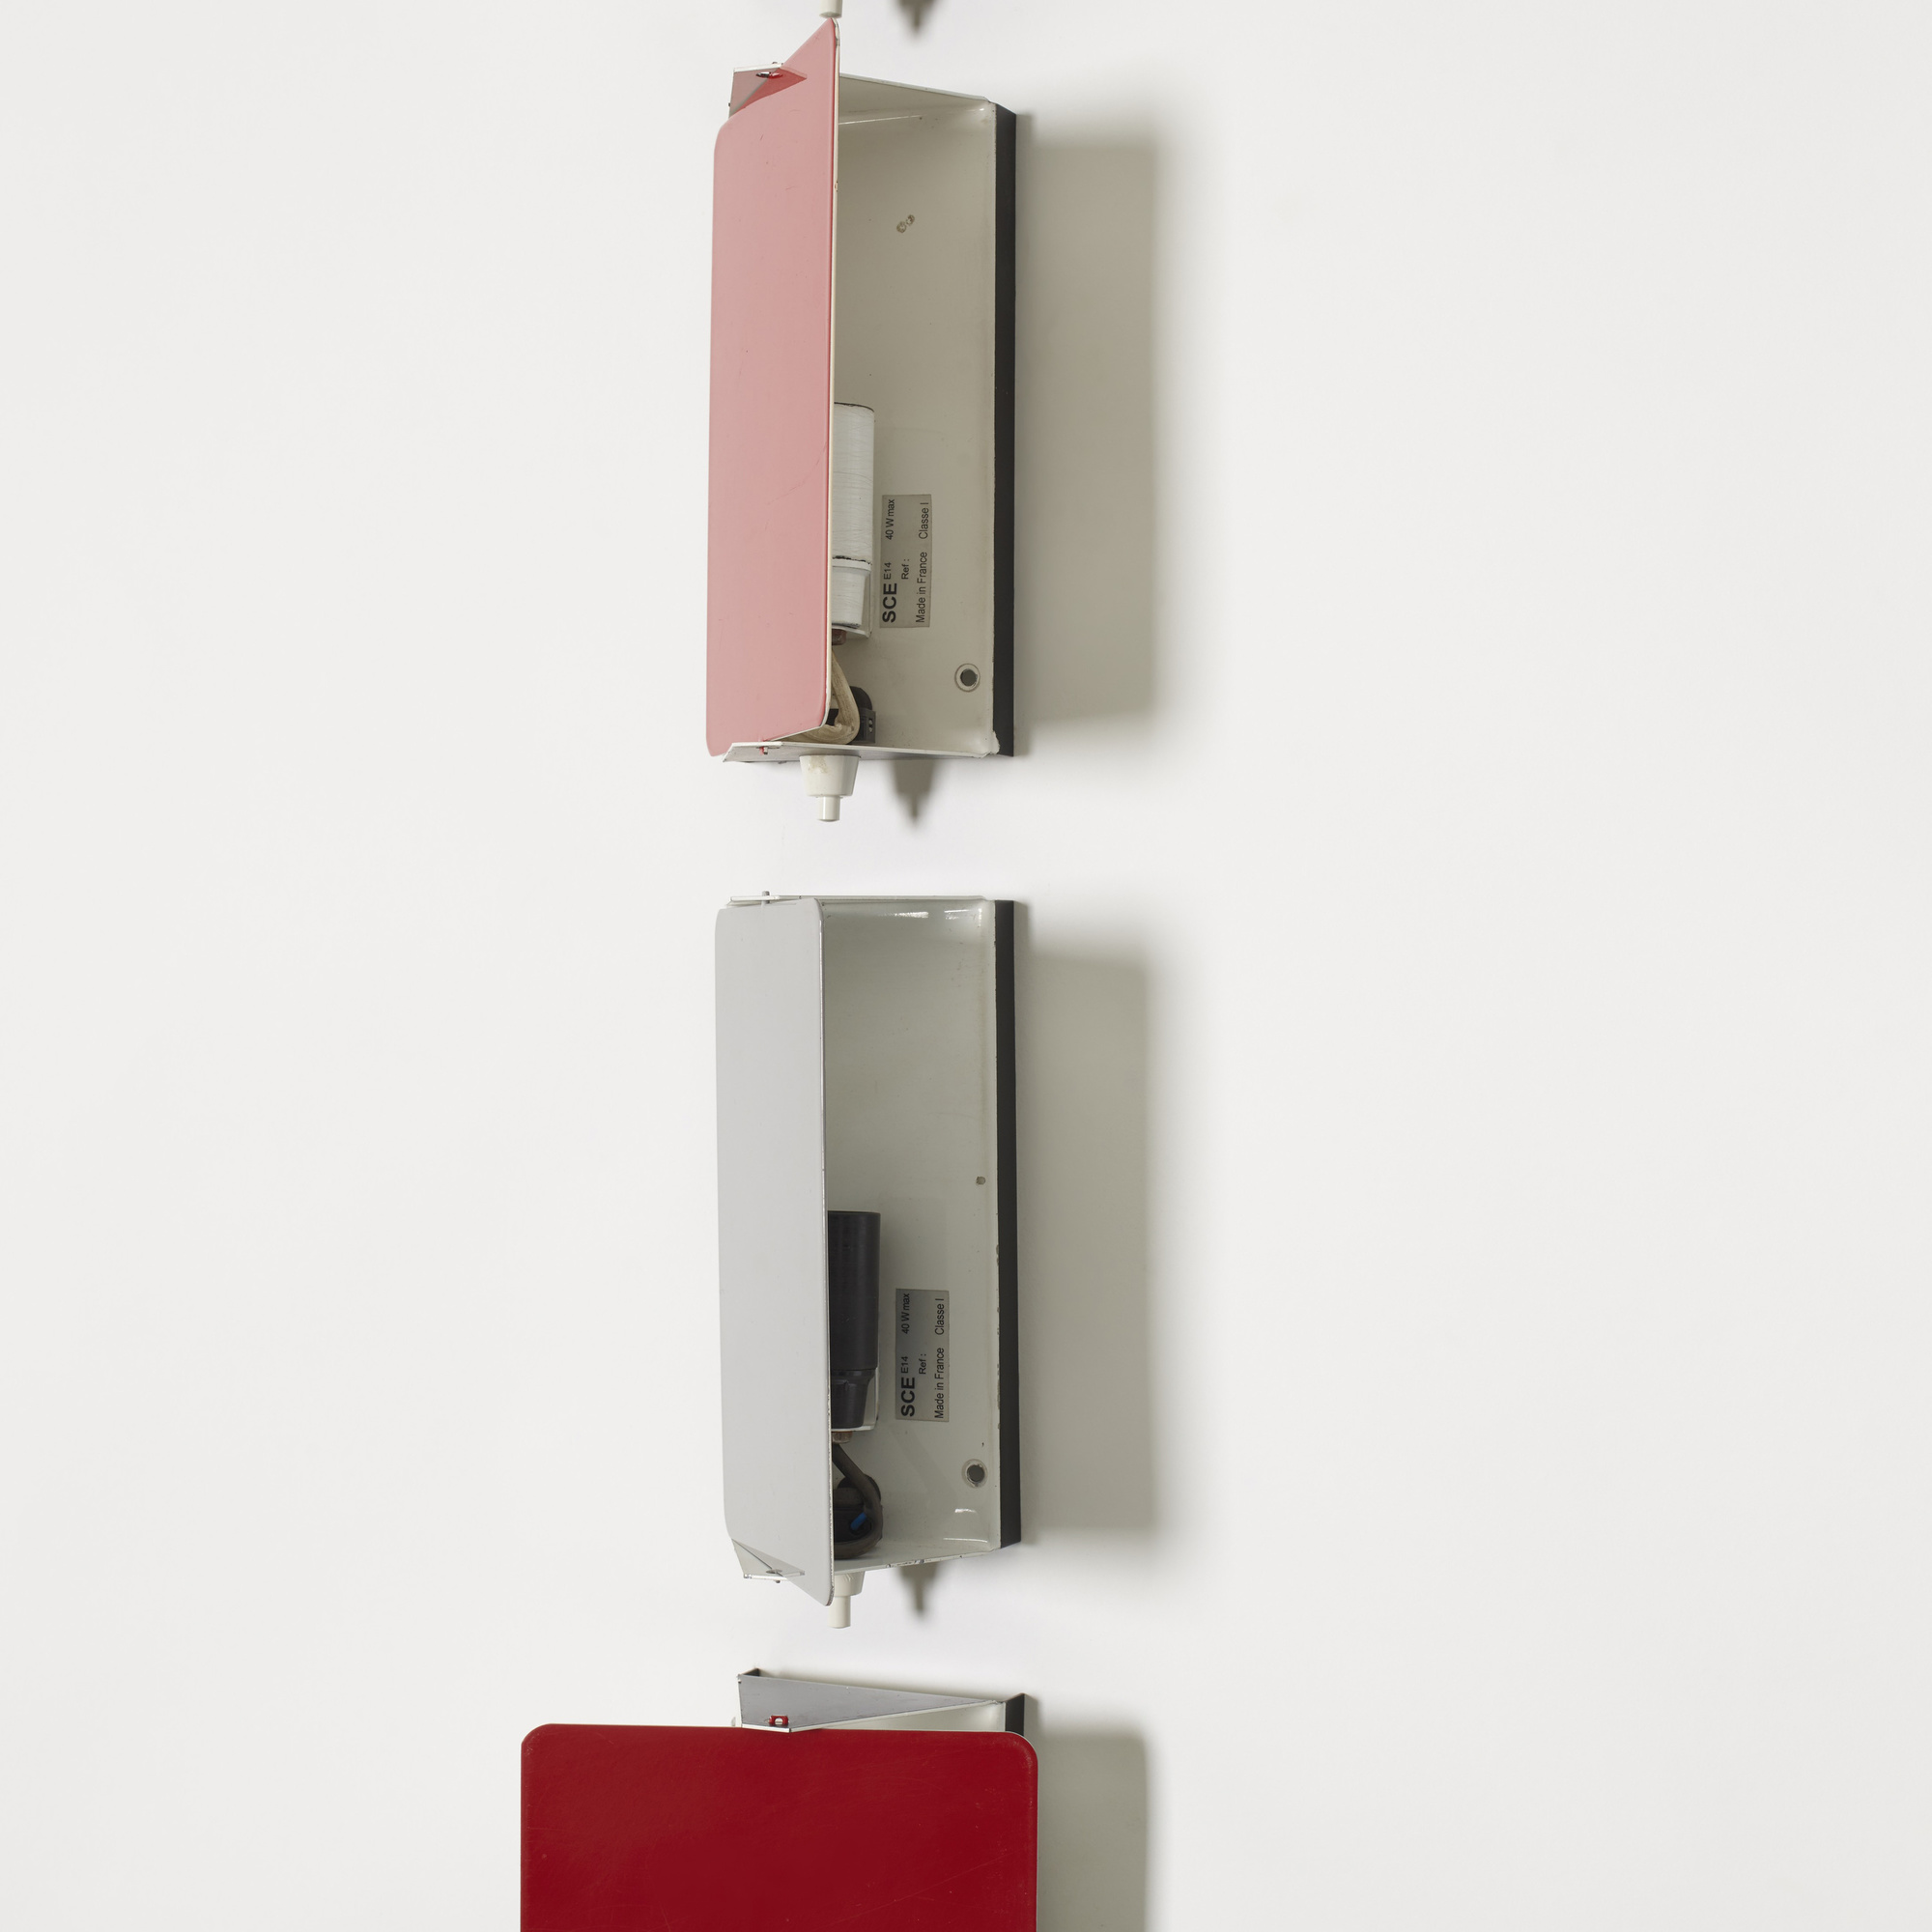 108: Charlotte Perriand / wall lights, set of twenty-four (2 of 2)